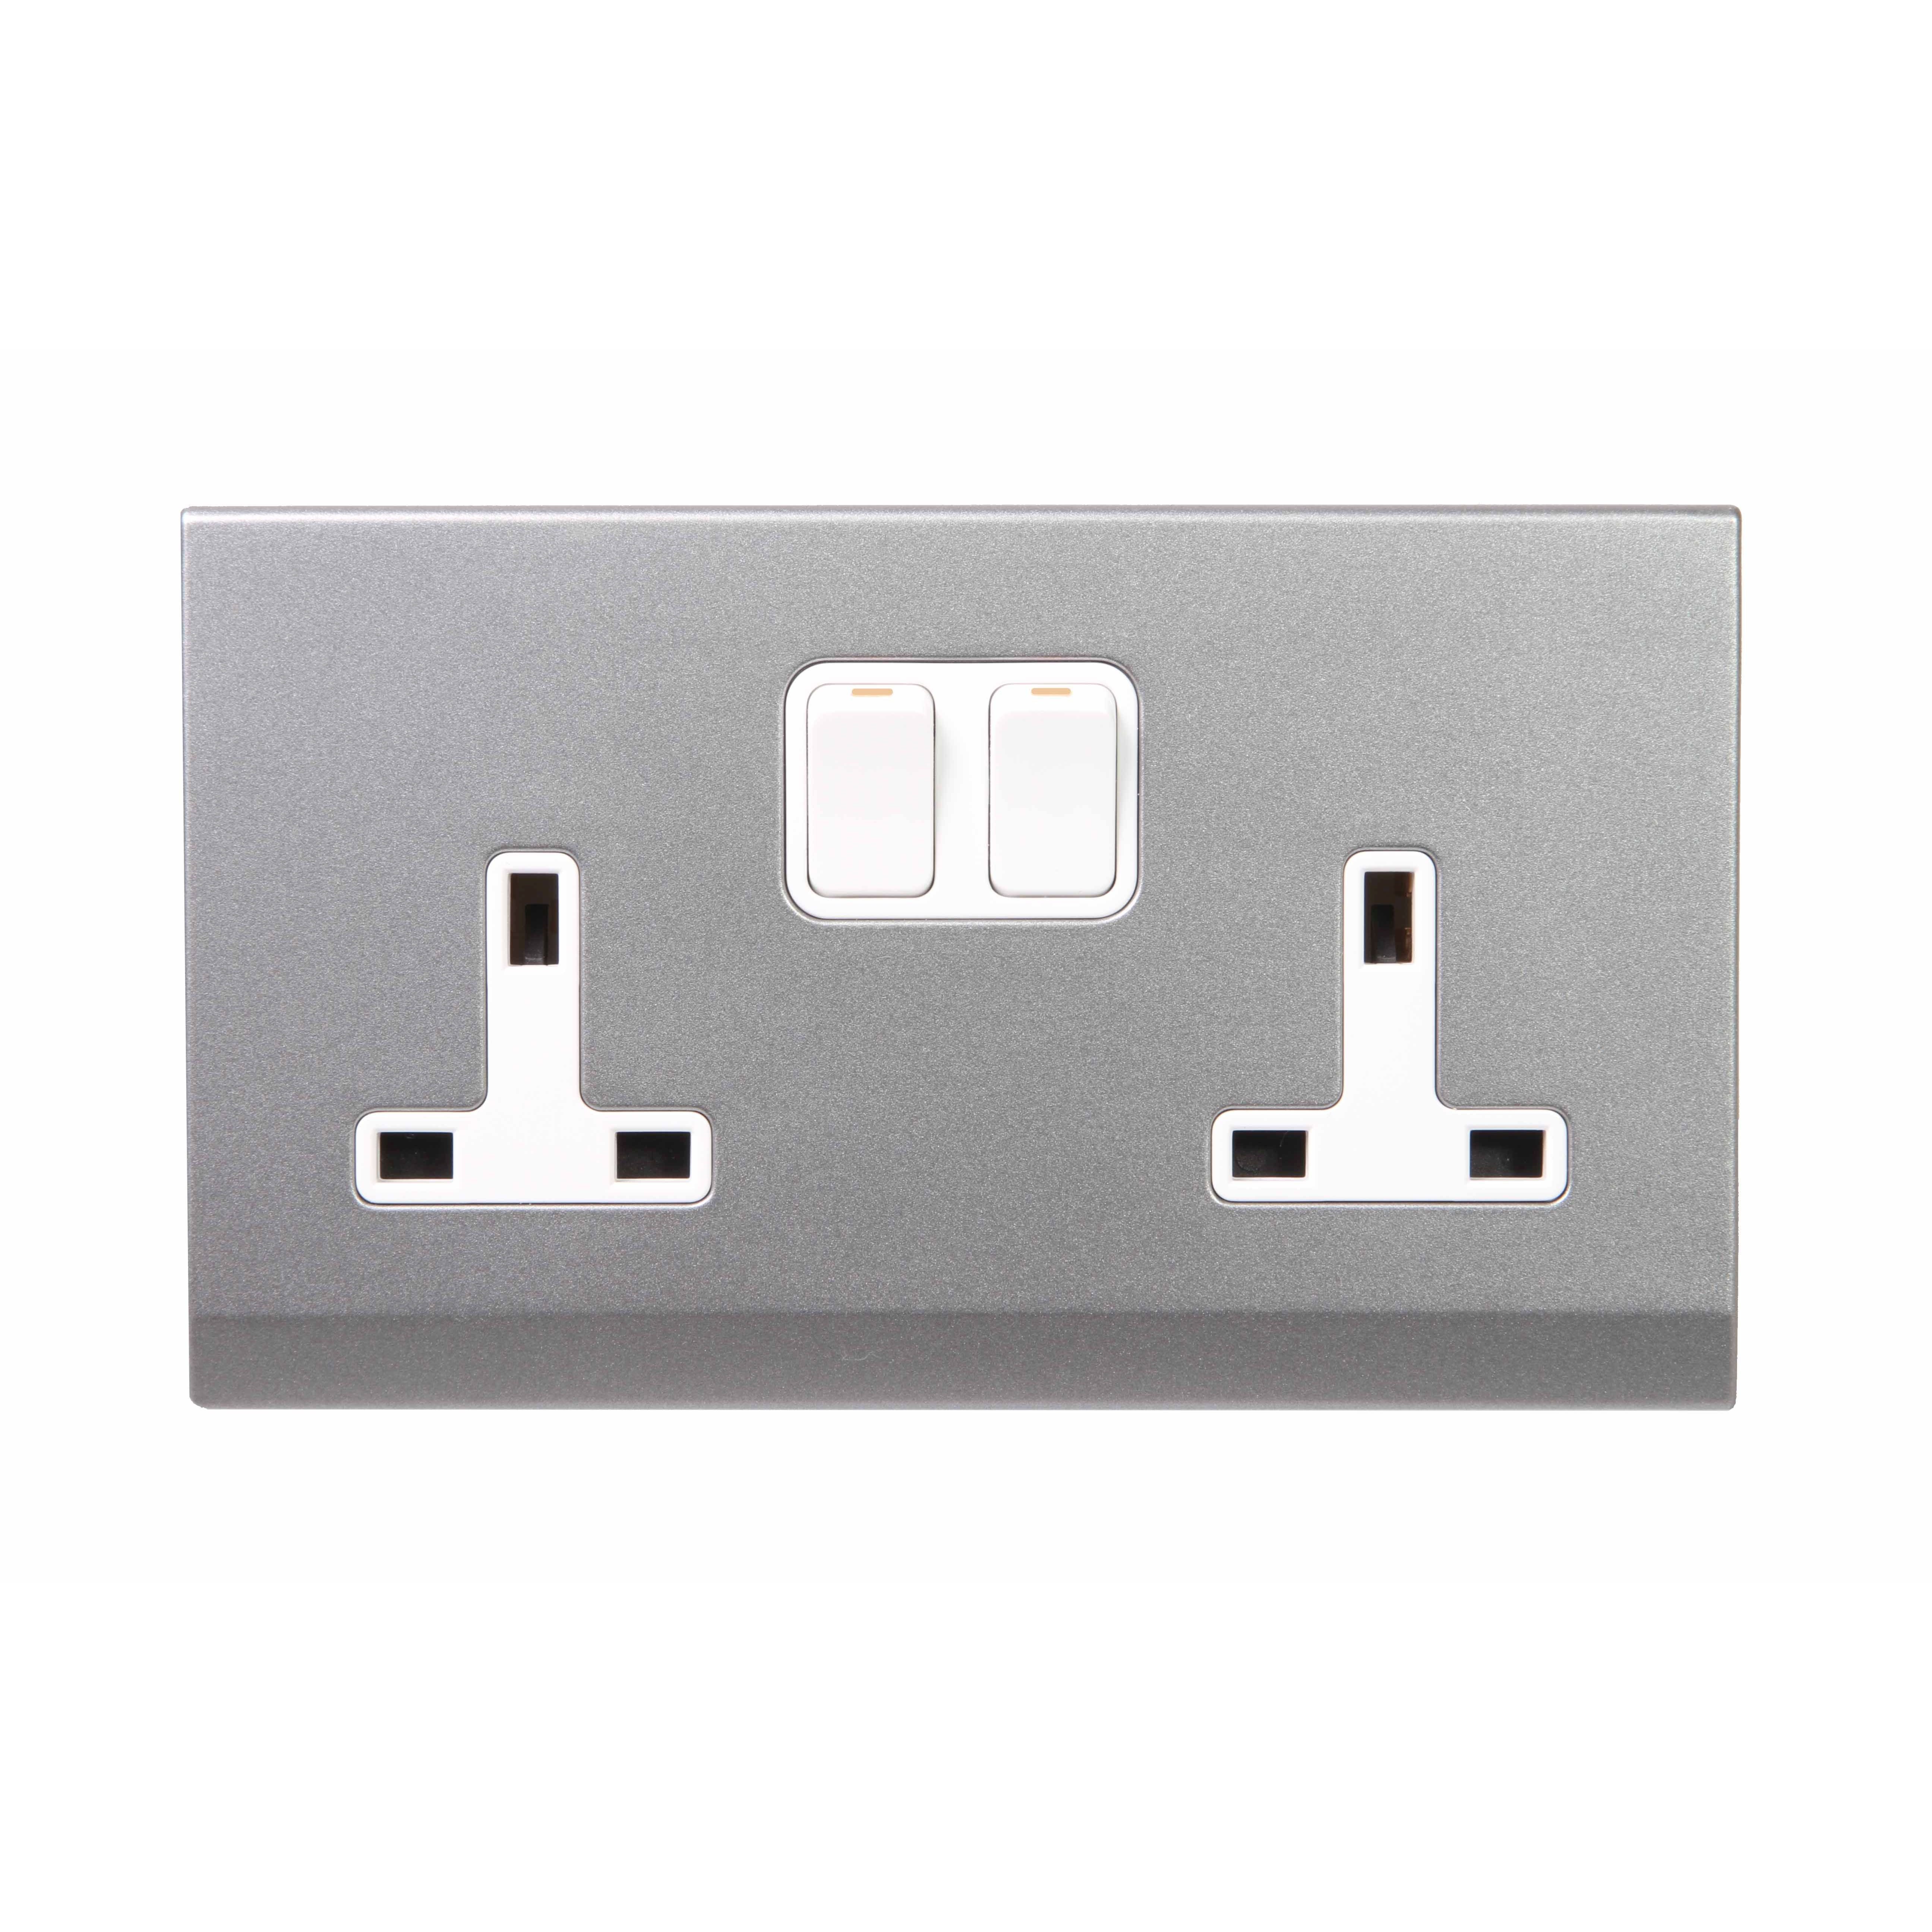 Simplicity Grey Screwless 13A Double Plug Socket 07442